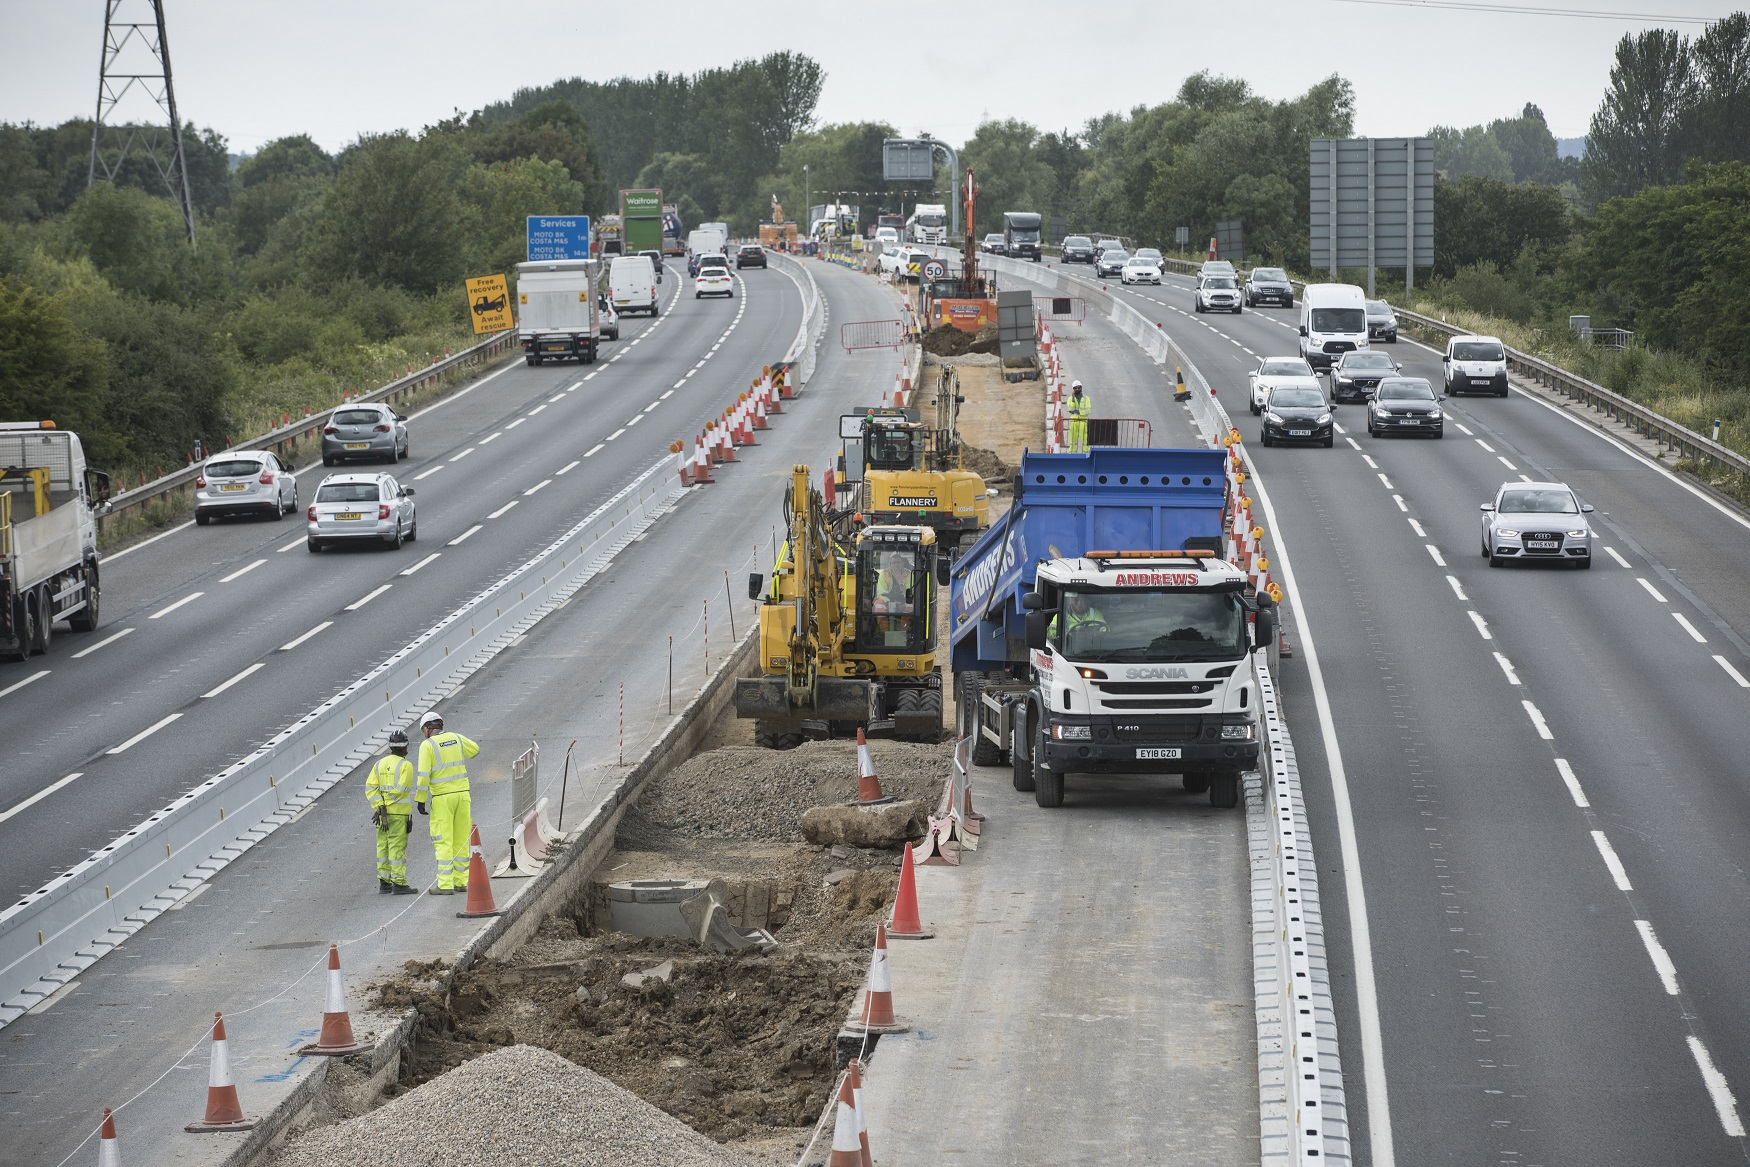 Improvements and major road projects   M4 junctions 3-12